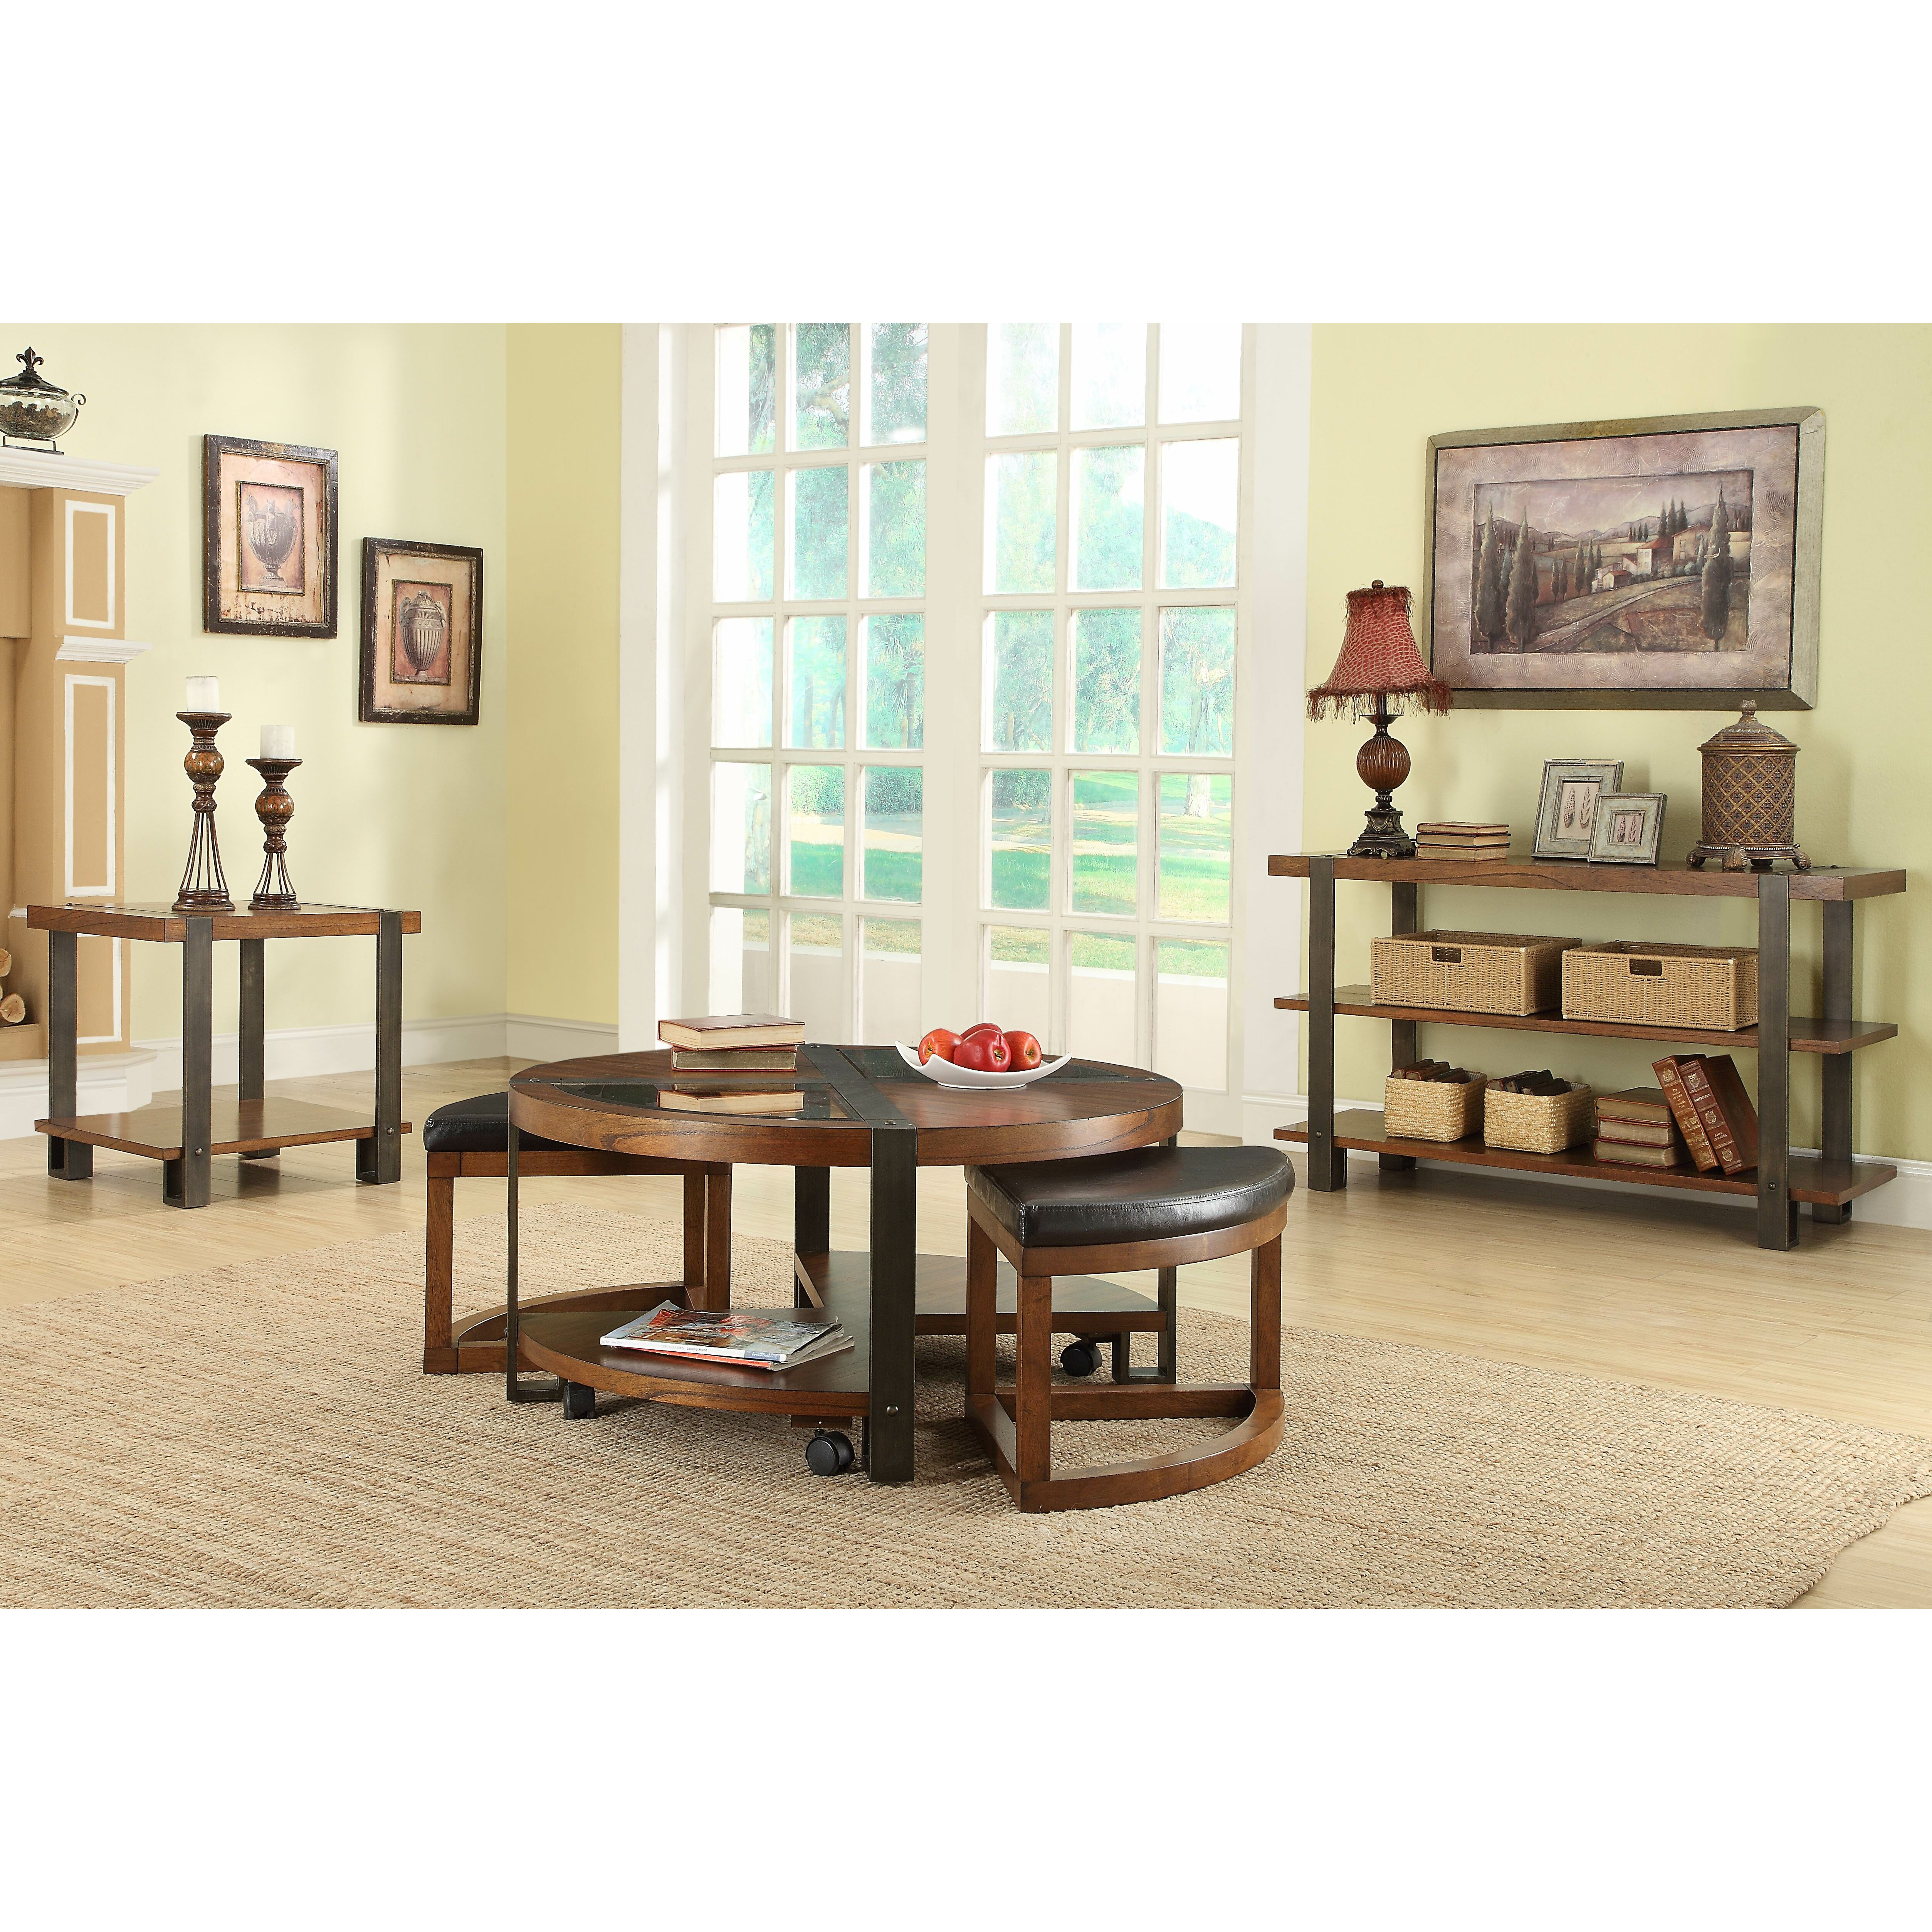 woodhaven hill northwood coffee table reviews wayfair. Black Bedroom Furniture Sets. Home Design Ideas